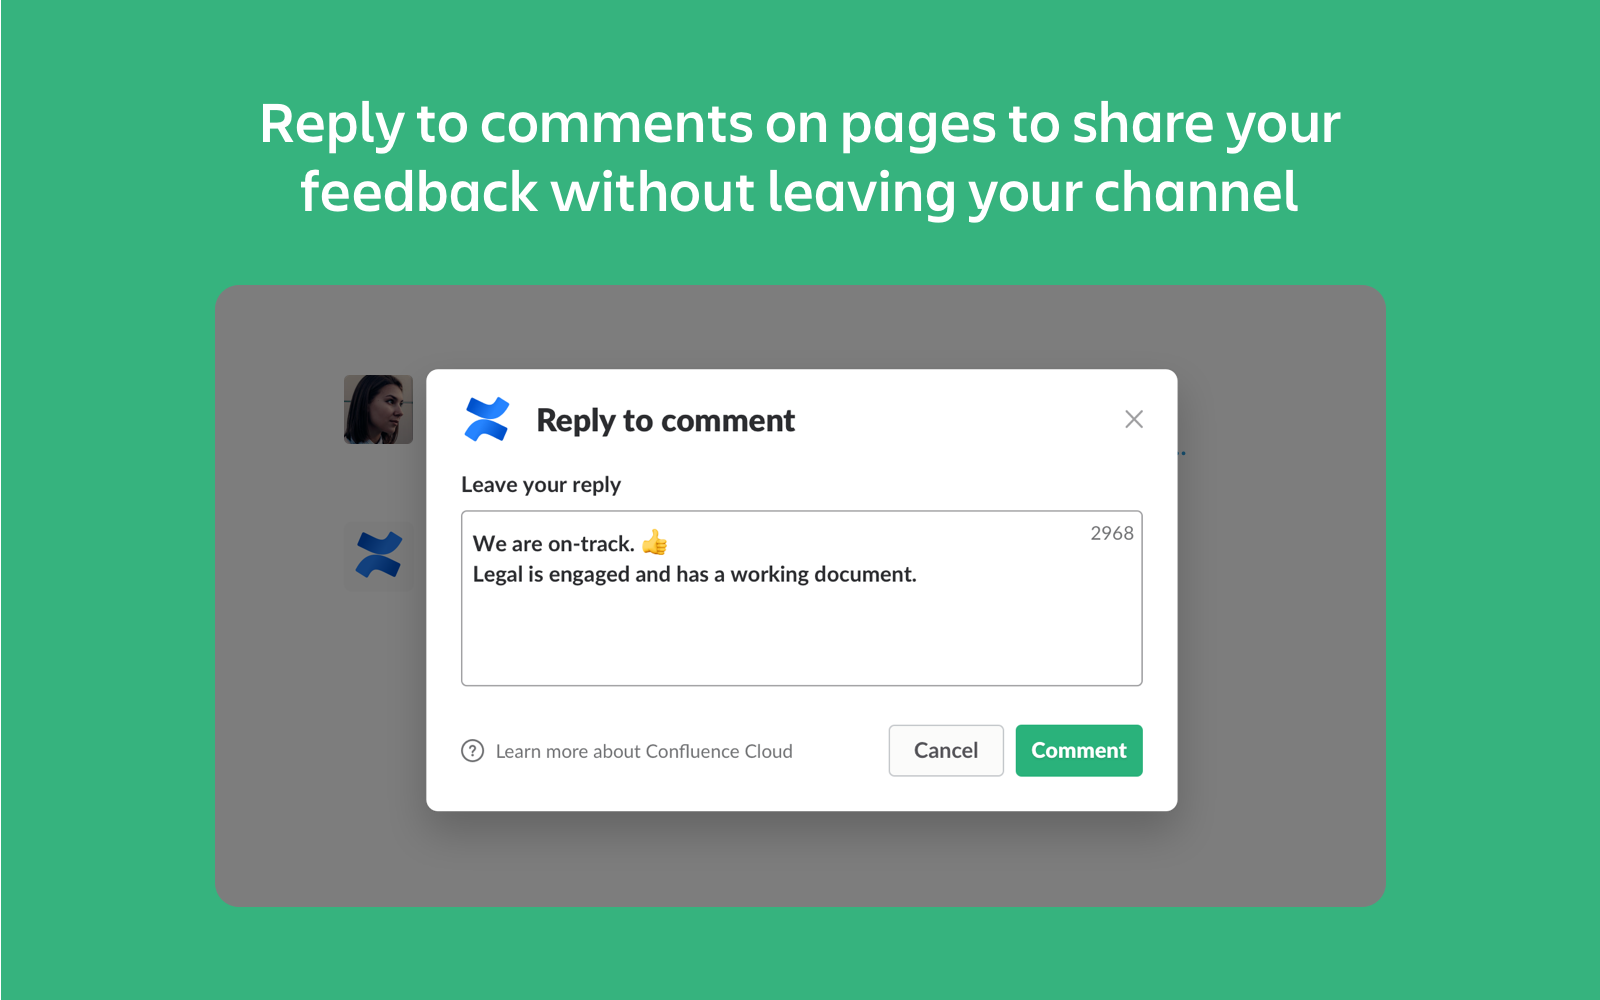 Reply to comments on Confluence pages without leaving Slack channel